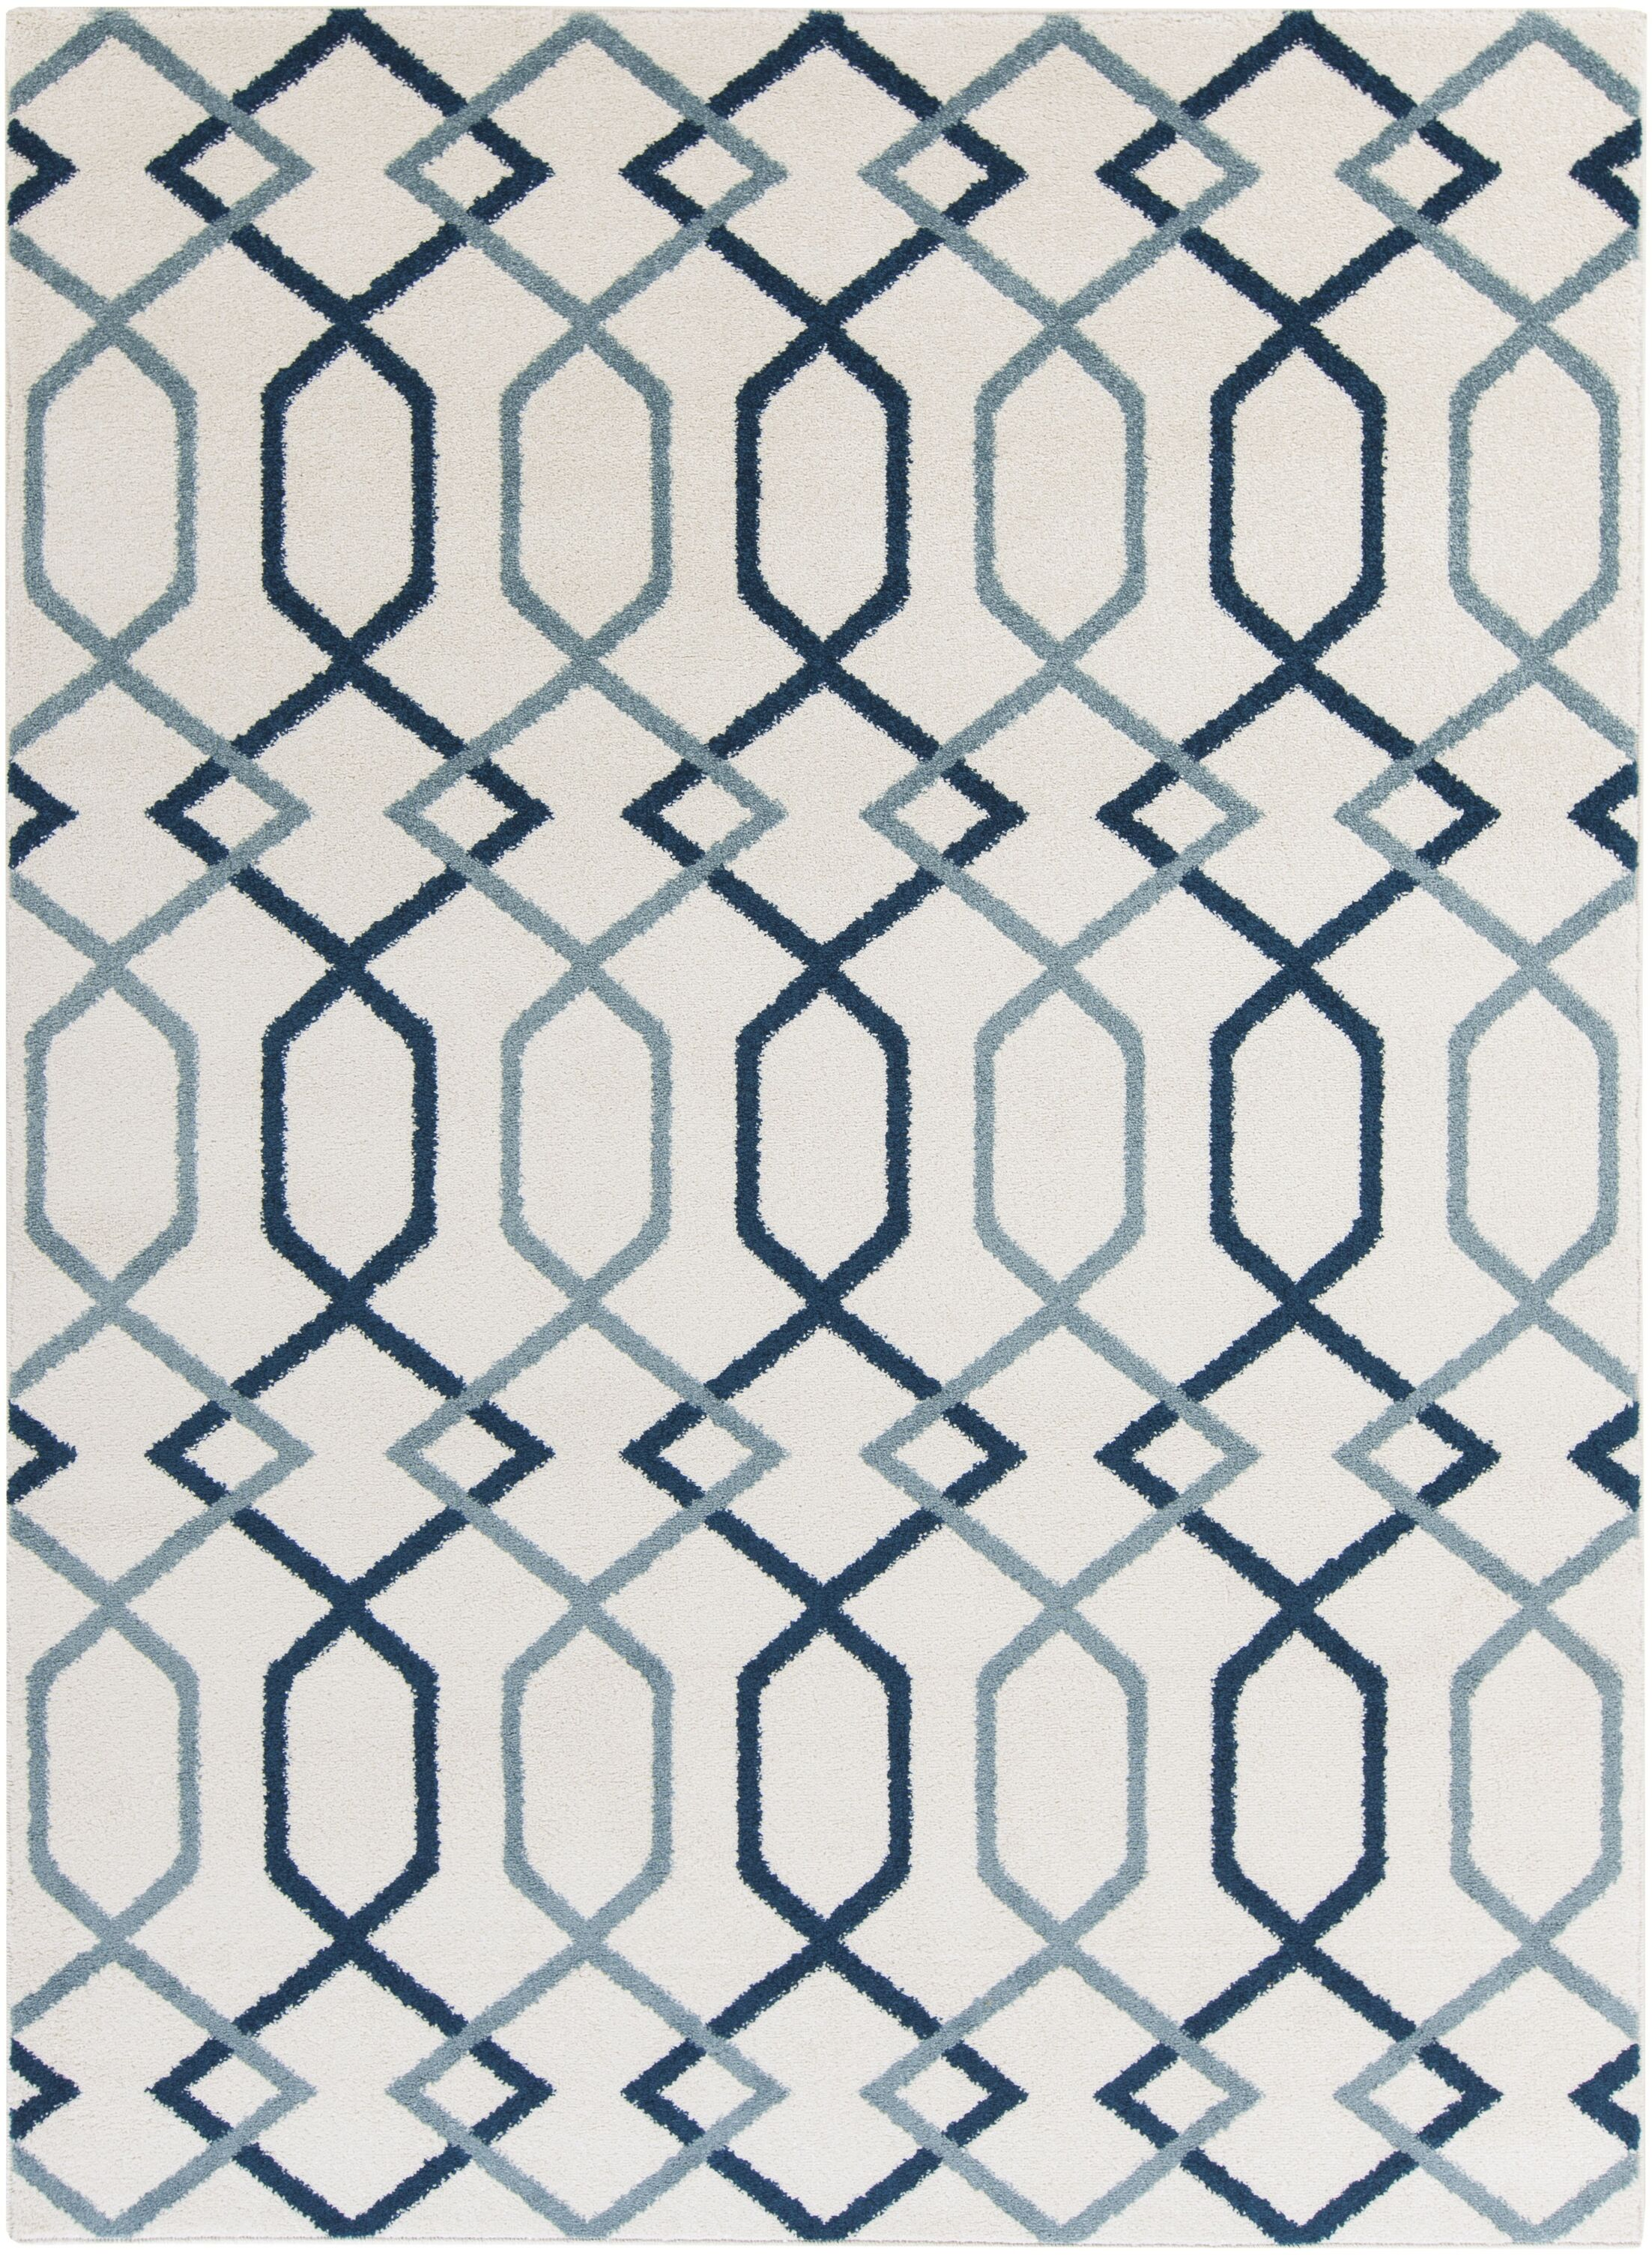 Siclen Blue Area Rug Rug Size: Rectangle 5'3